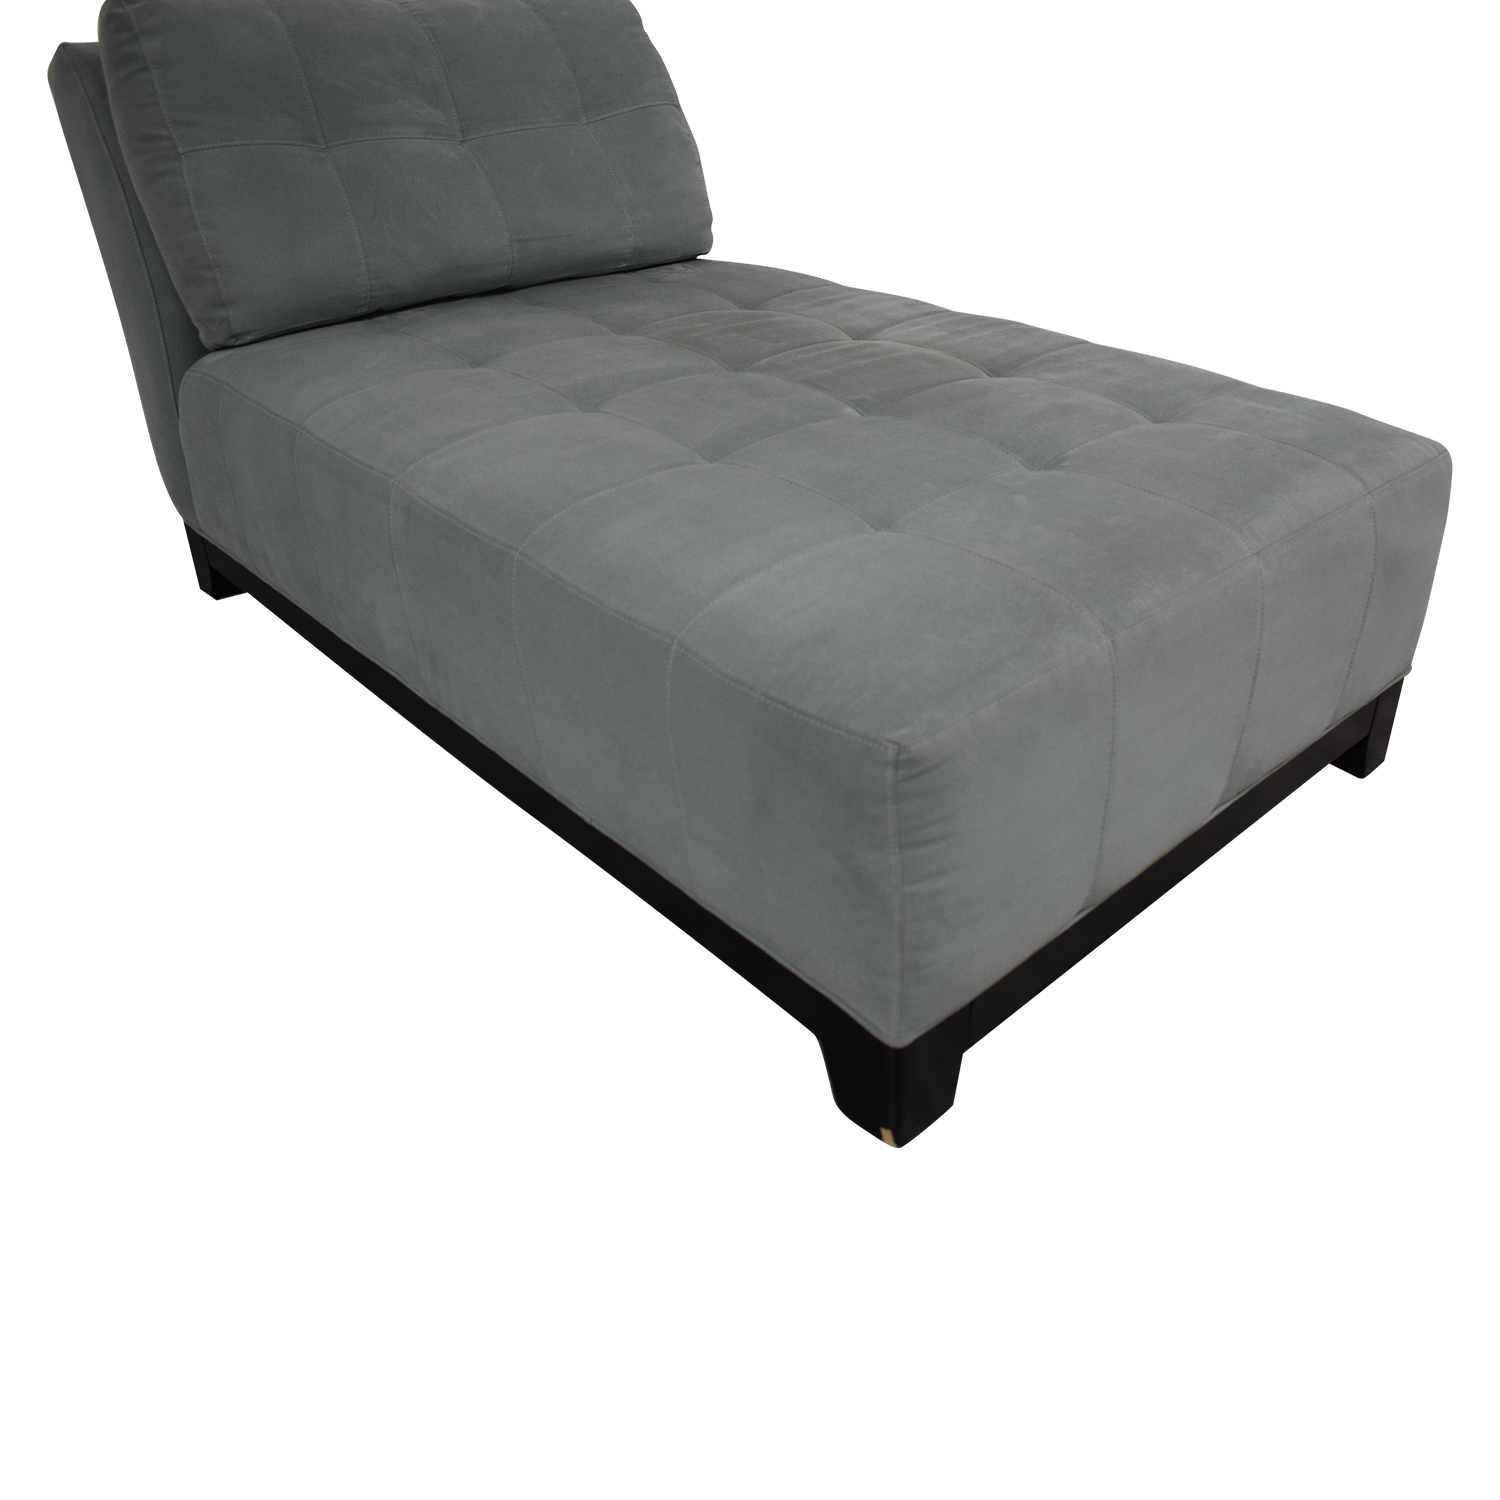 HM Richards Furniture HM Richards Furniture Chaise Lounge on sale